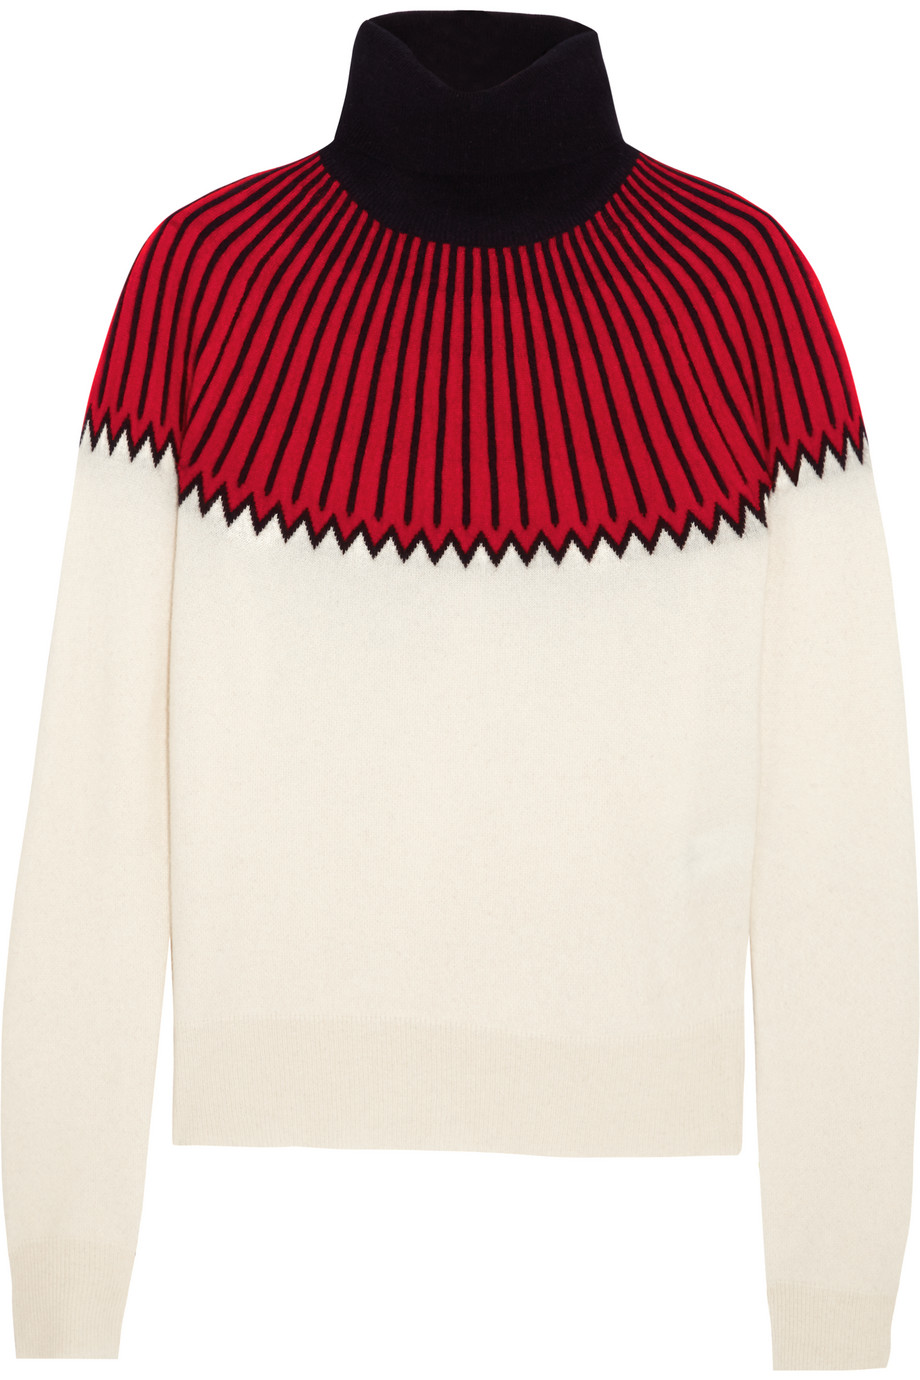 Chloé Snow Capsule Intarsia Cashmere Turtleneck Sweater, Red, Women's, Size: XL